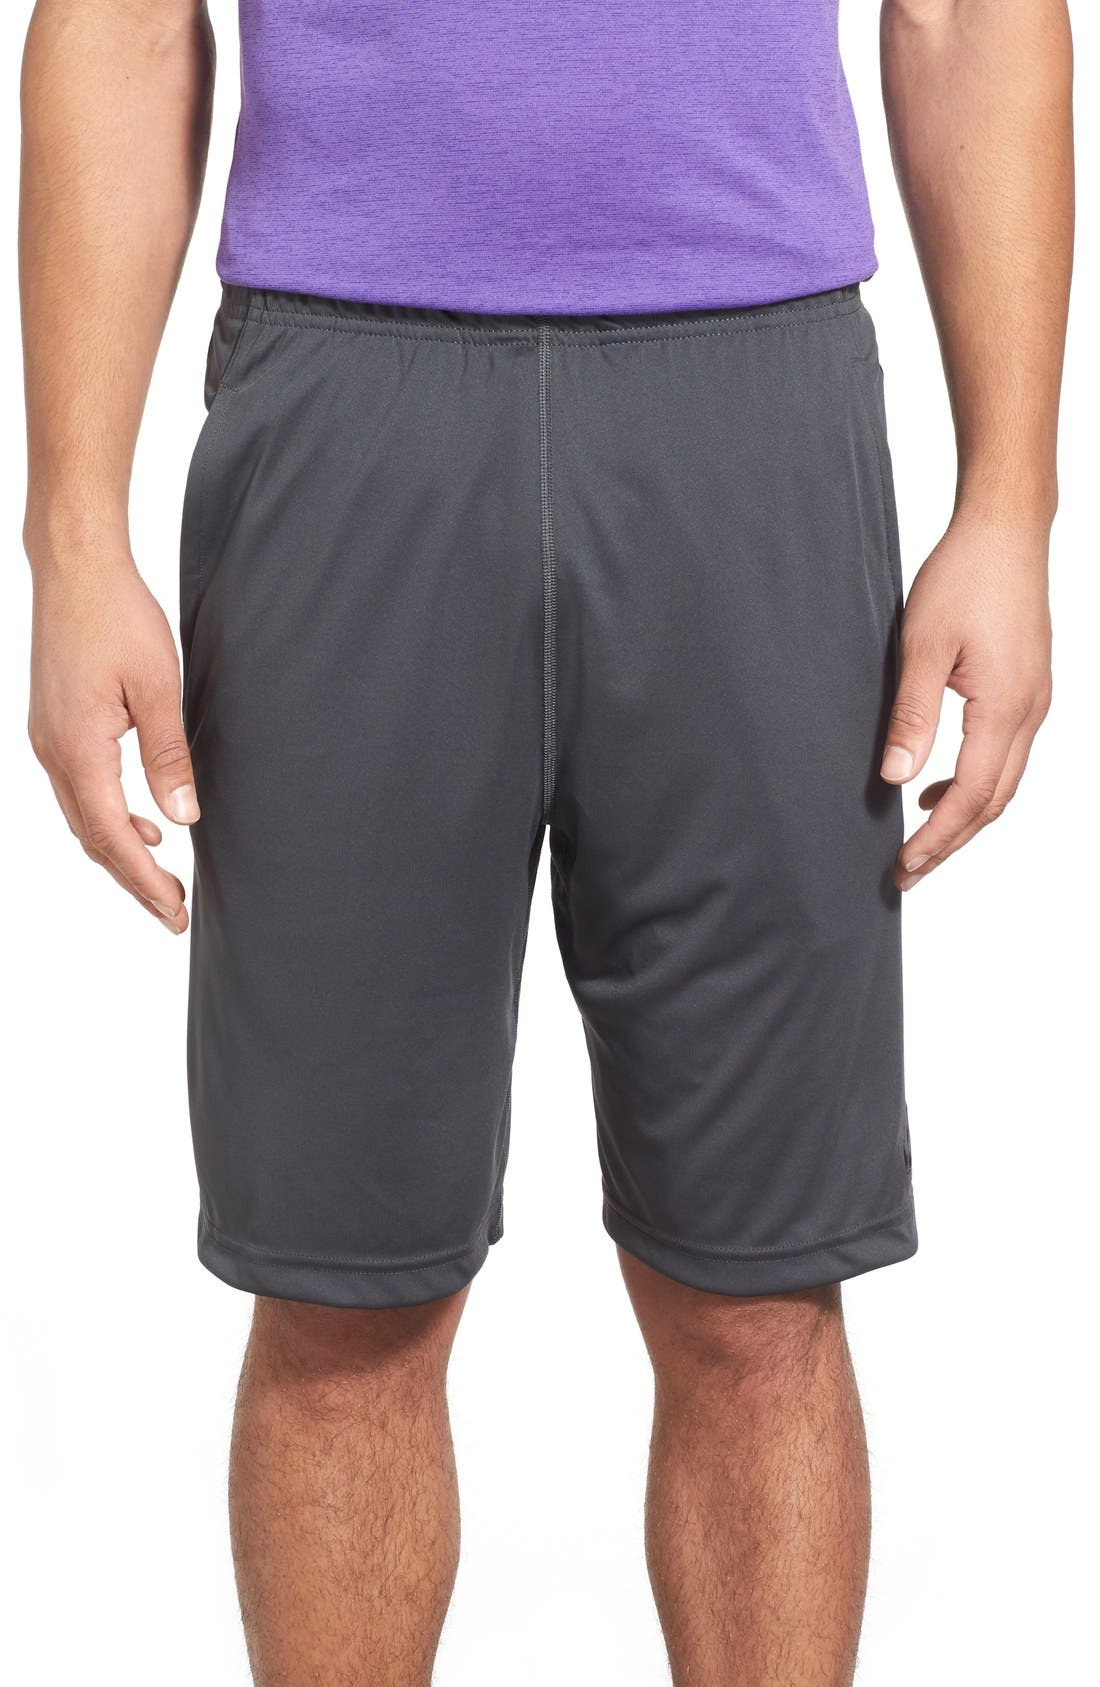 'Fly' Dri-FIT Training Shorts,                             Main thumbnail 14, color,